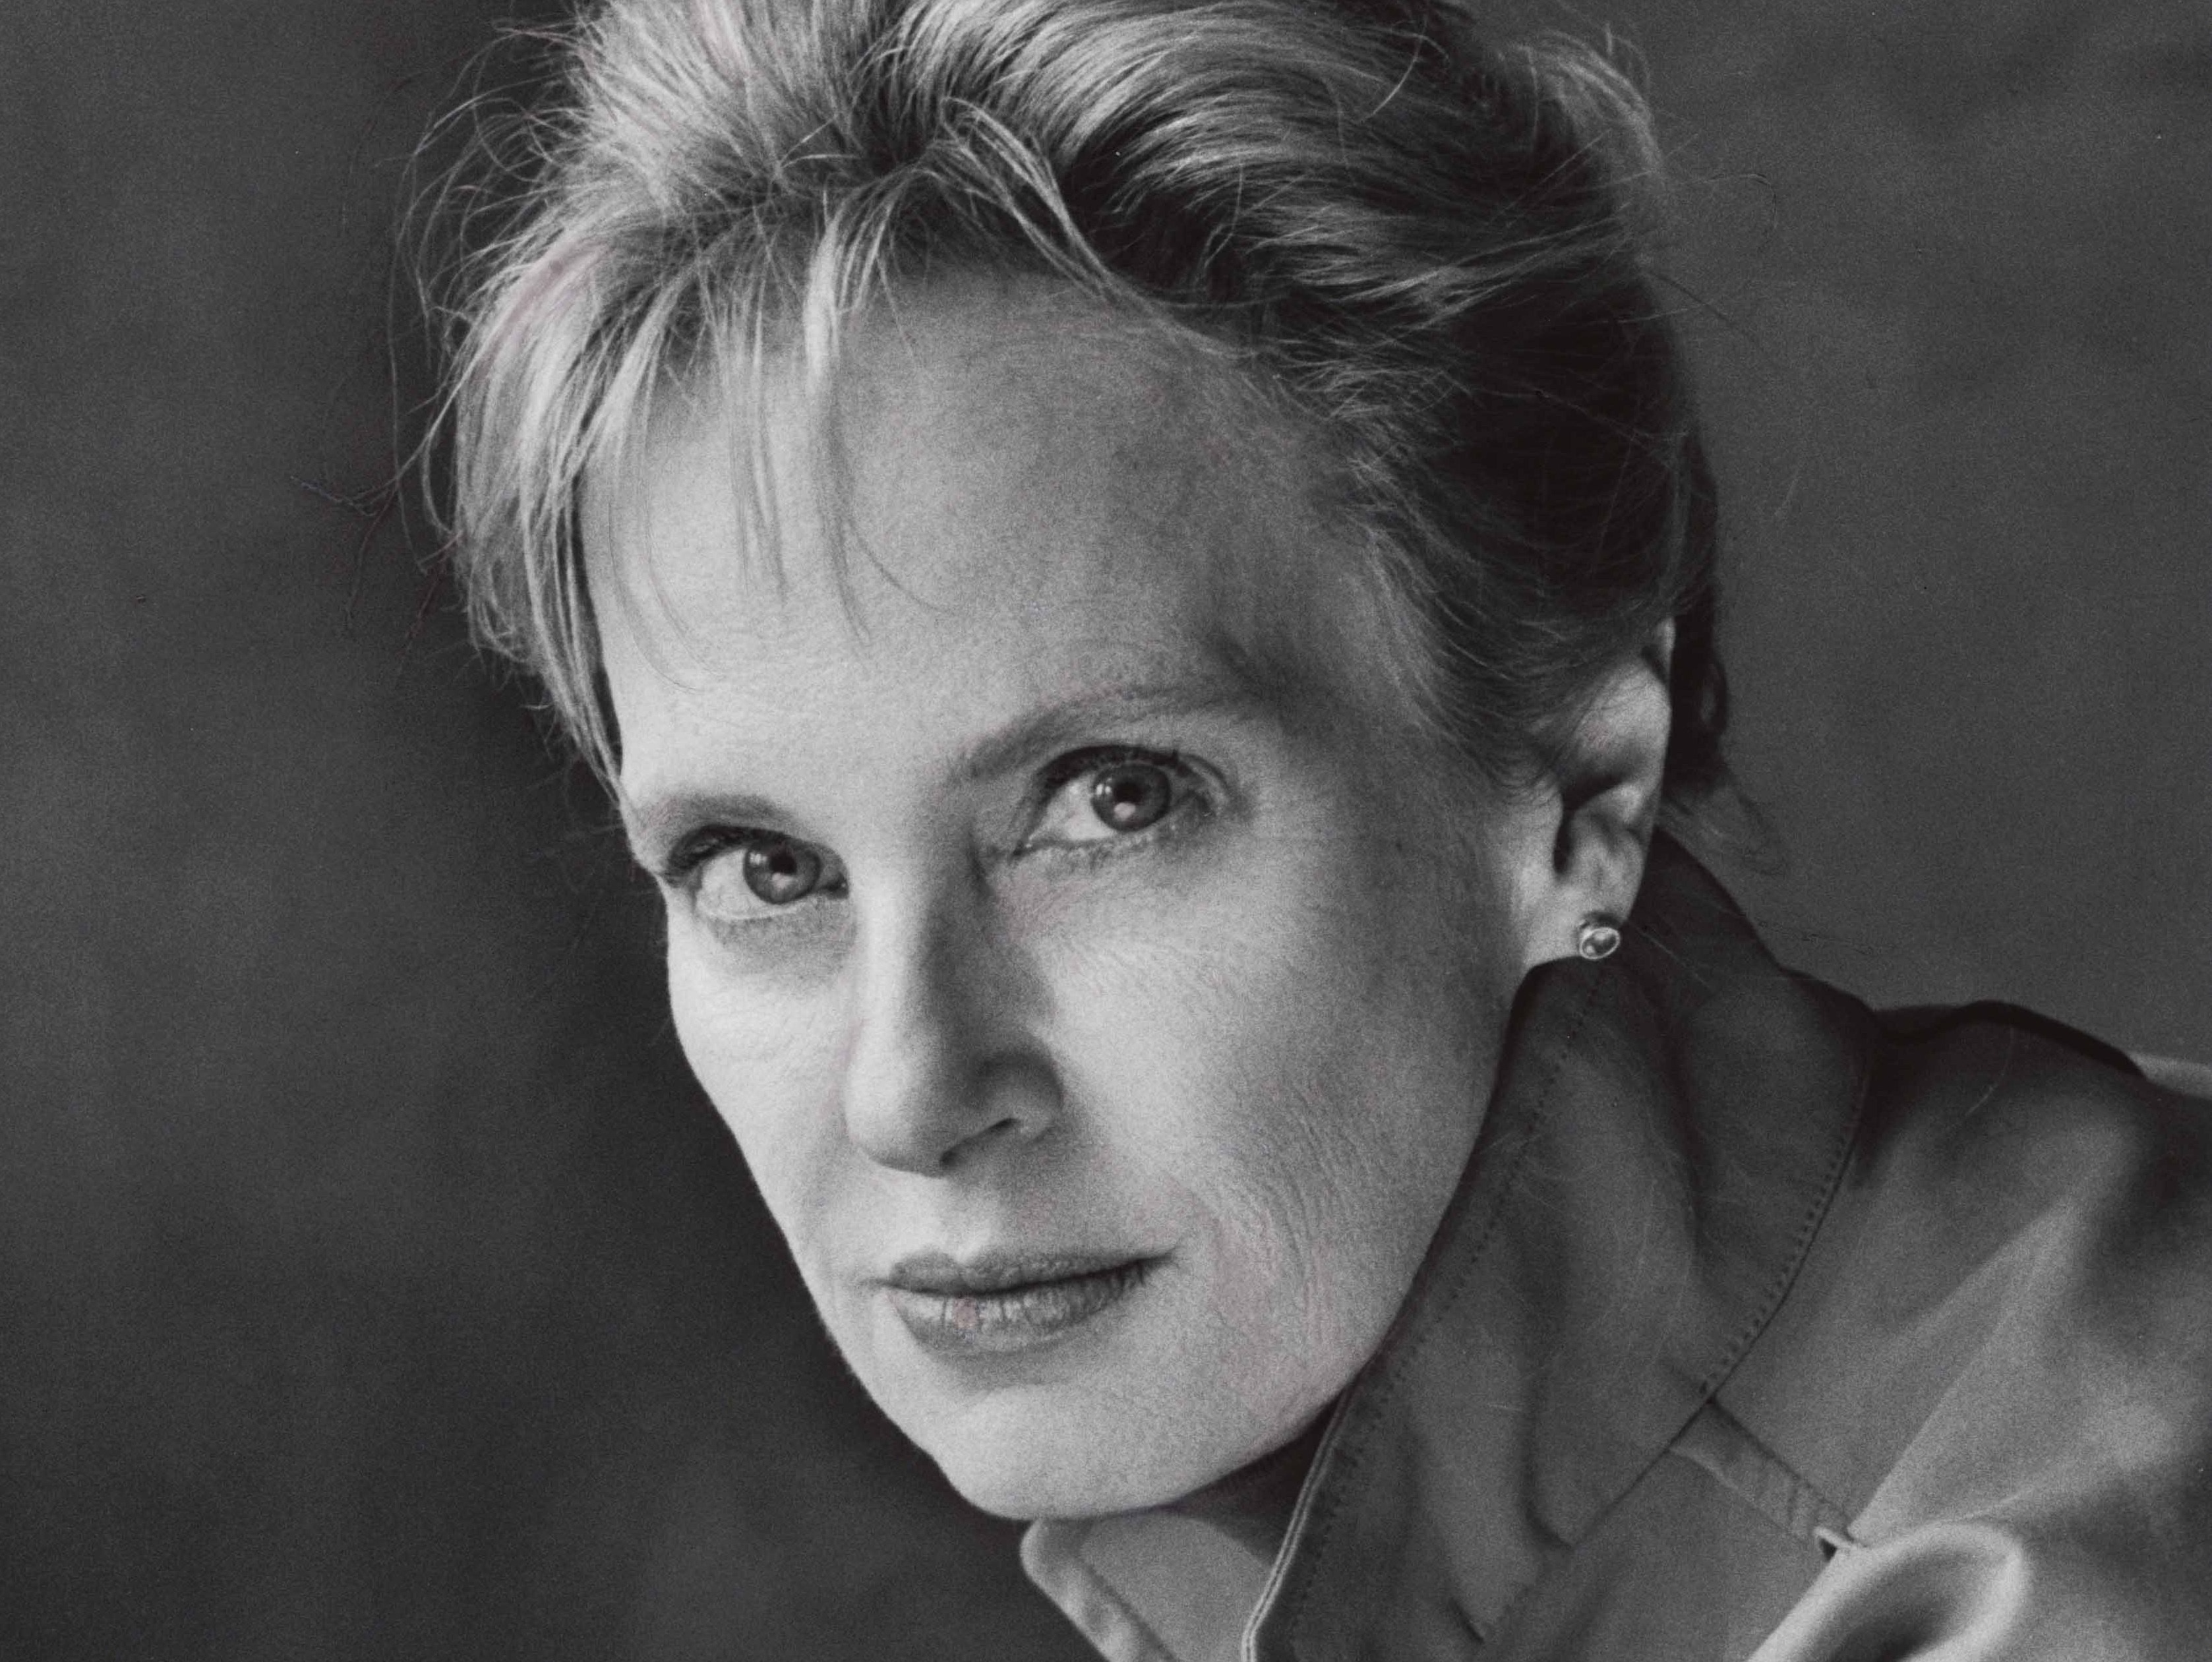 Siri Hustvedt's previous books include What I Loved and The Summer Without Men.